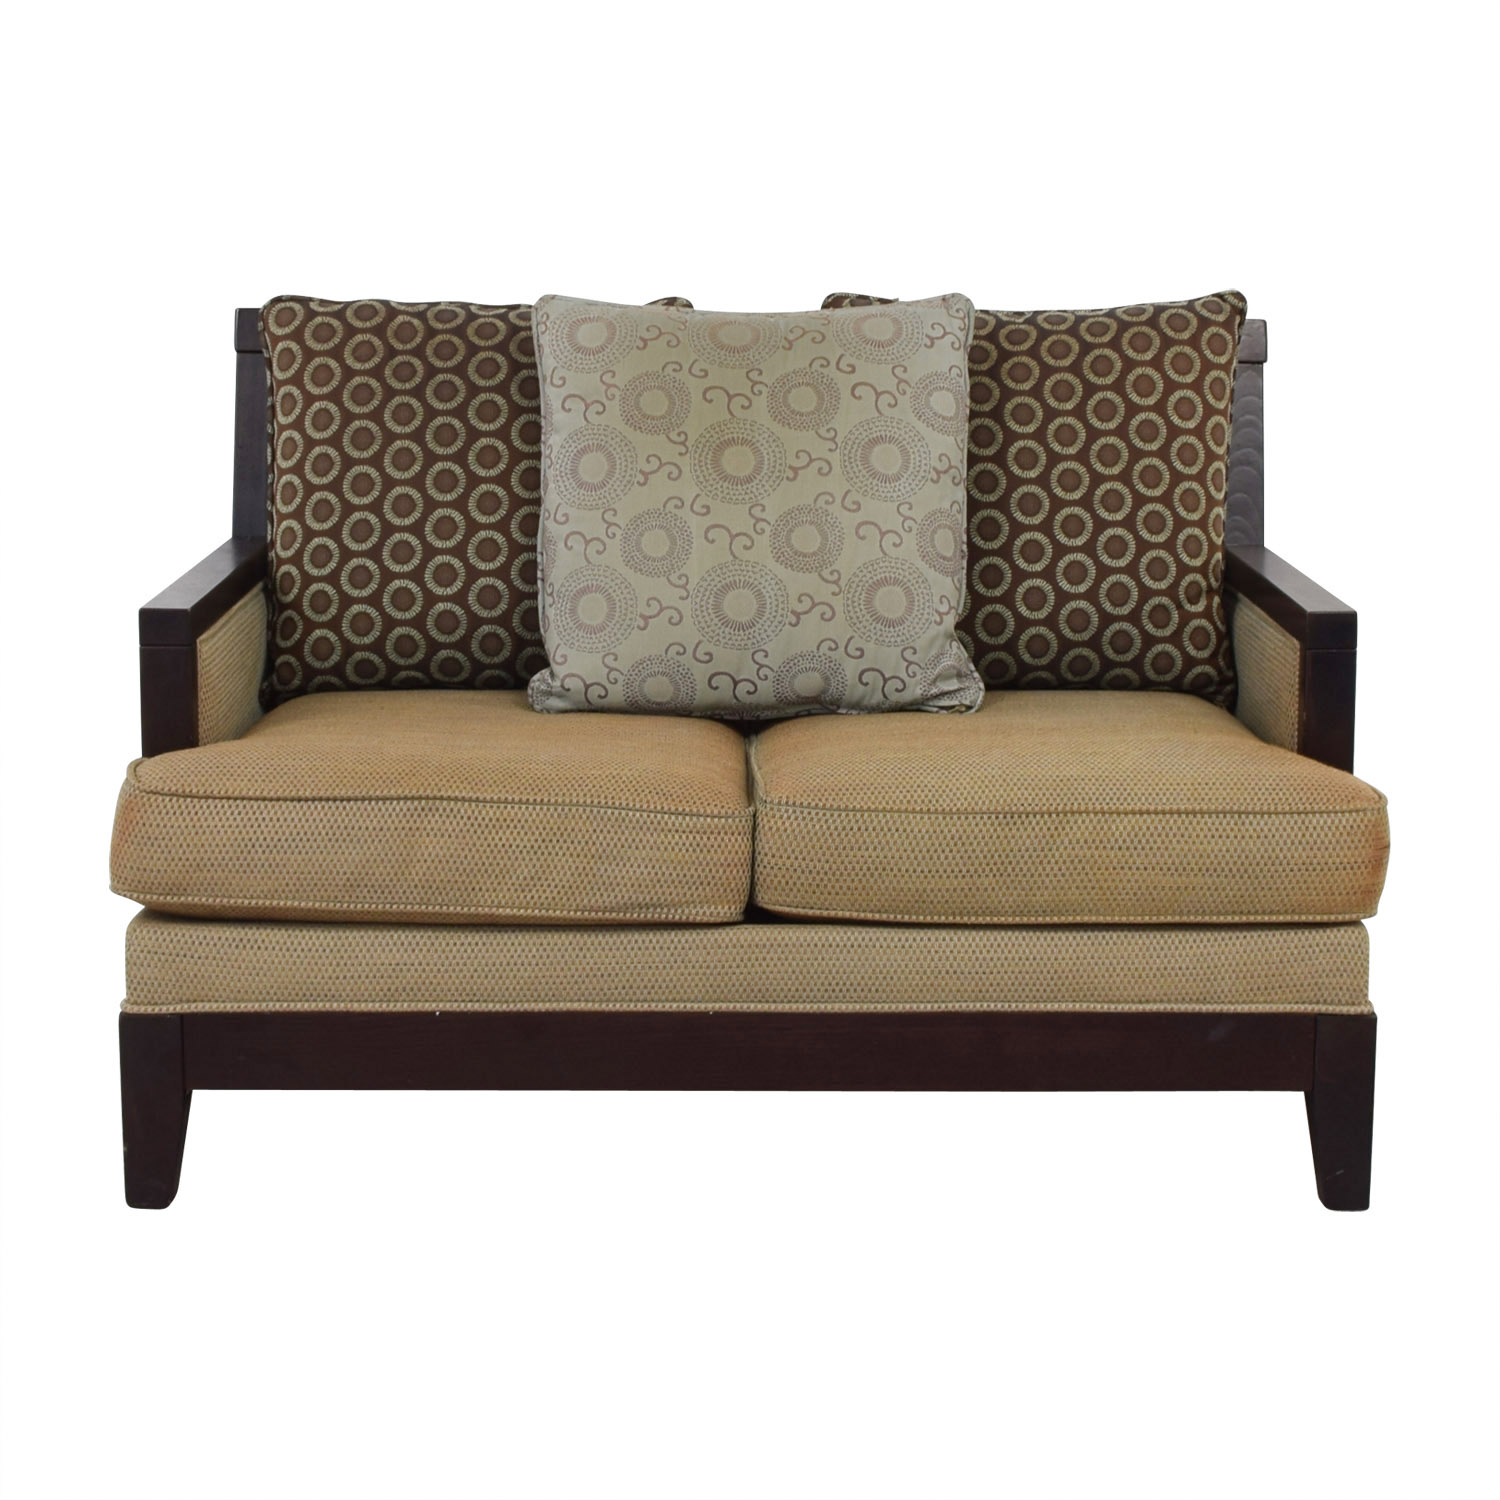 buy Raymour & Flanigan Wooden Loveseat Raymour & Flanigan Loveseats